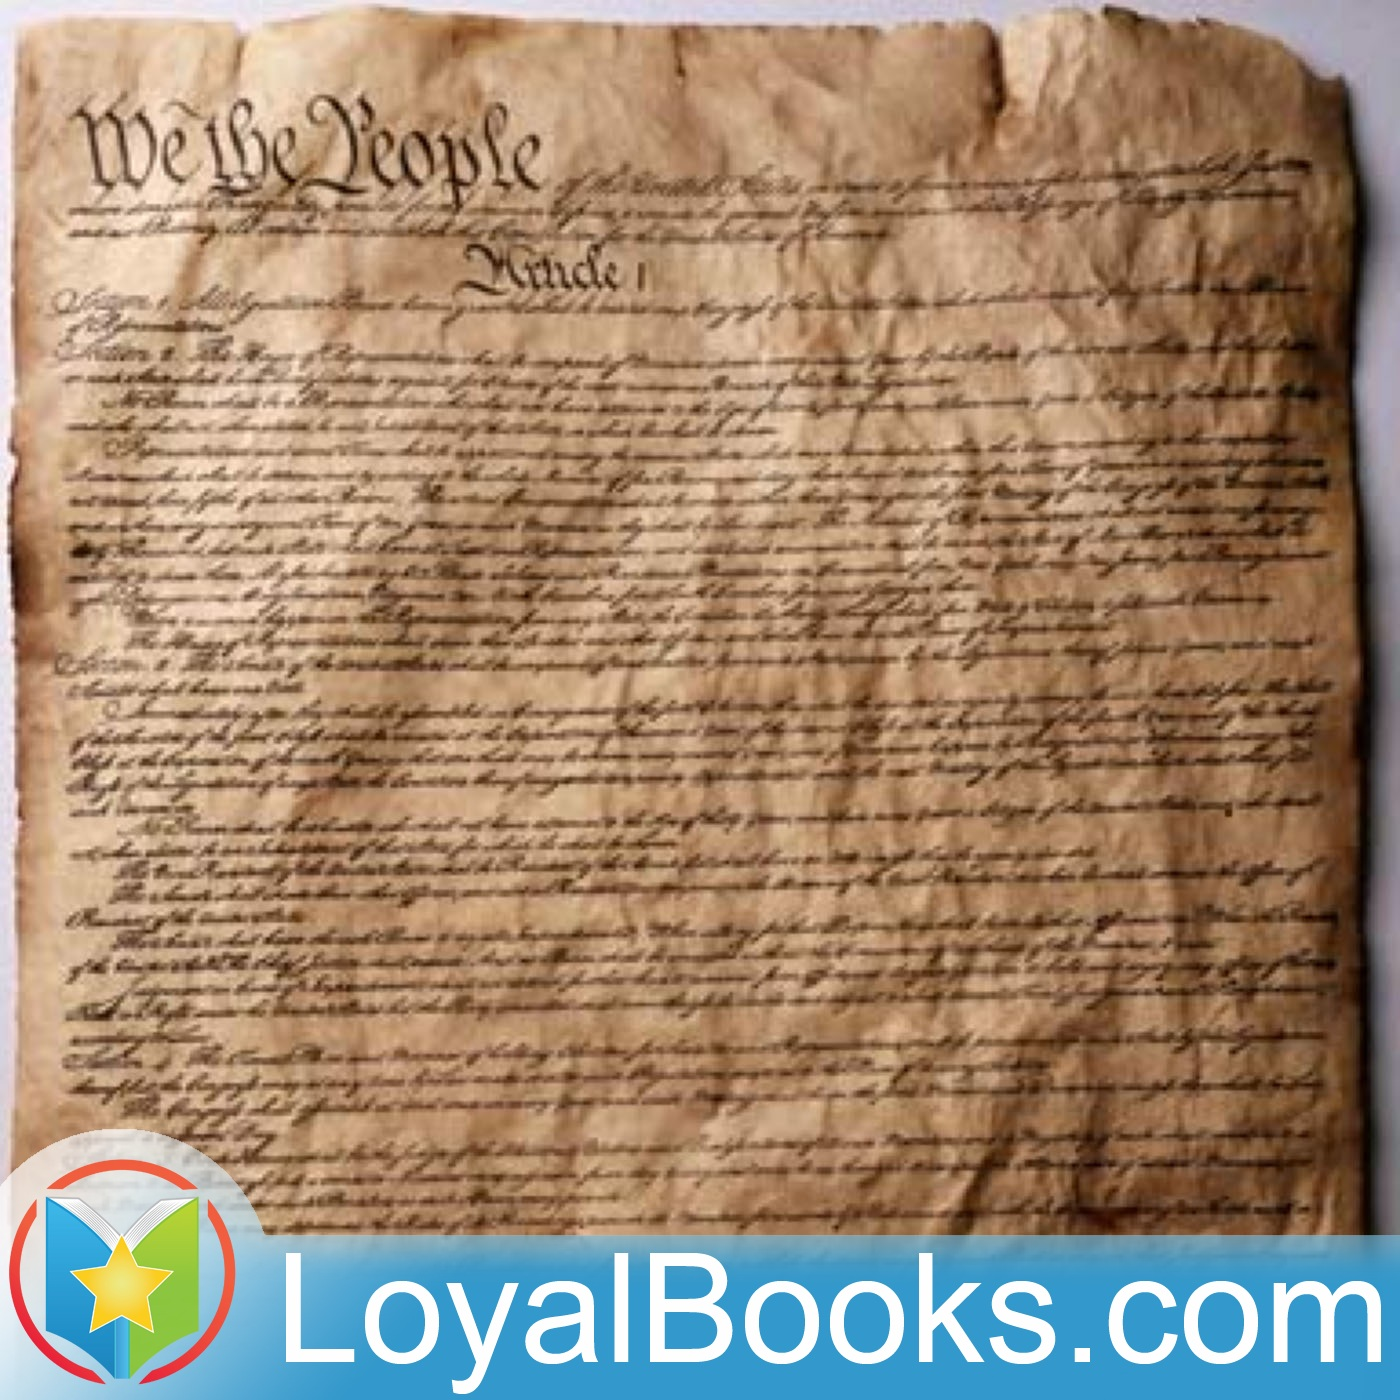 <![CDATA[The Constitution of the United States of America, 1787 by Founding Fathers of the United States]]>